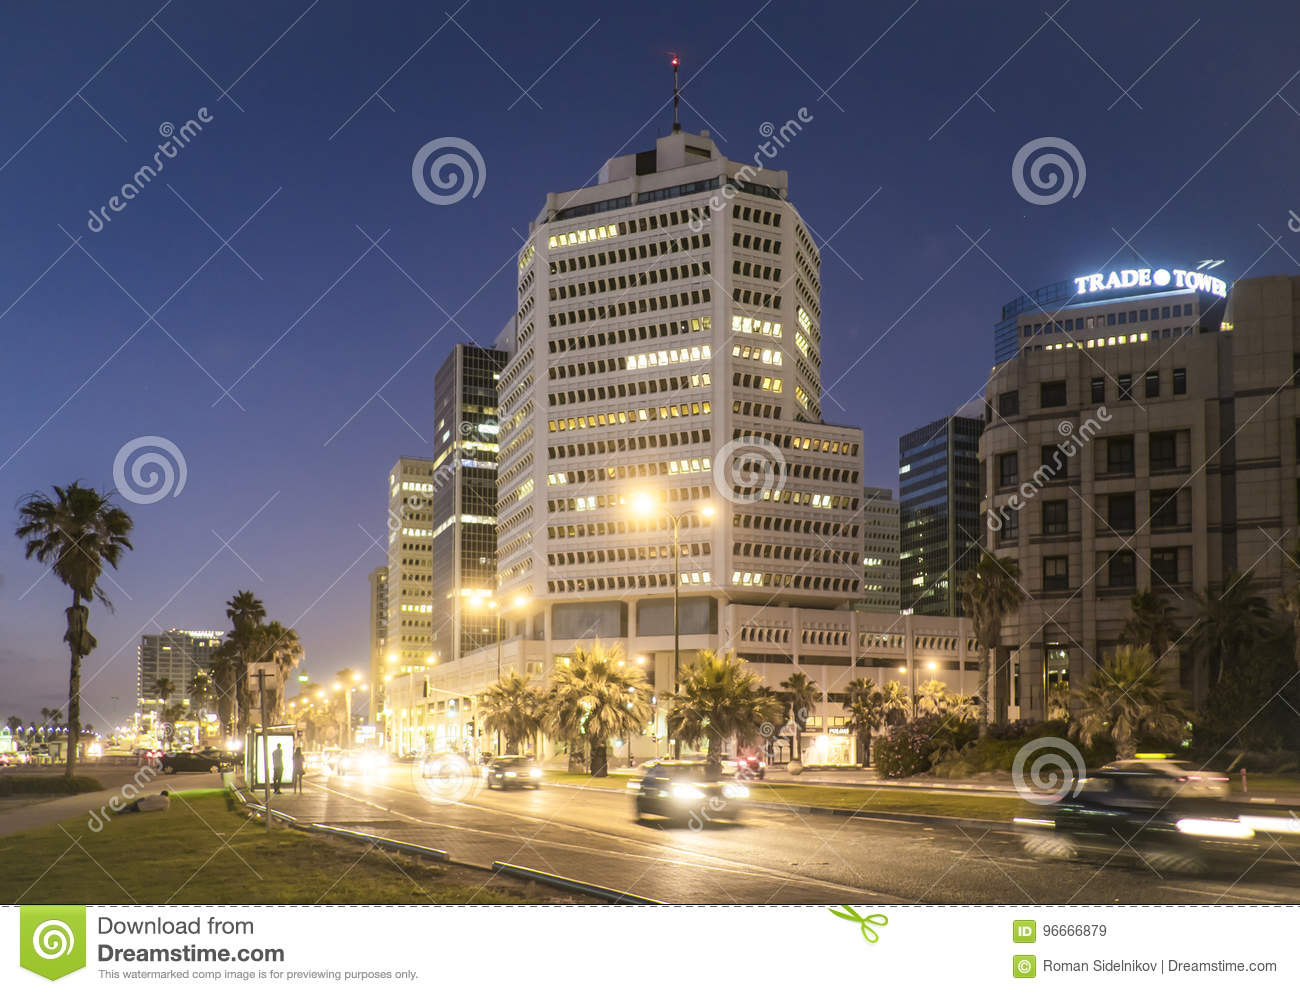 Tel Aviv 10.06.2017: Tel Aviv promenade night scene and transportation